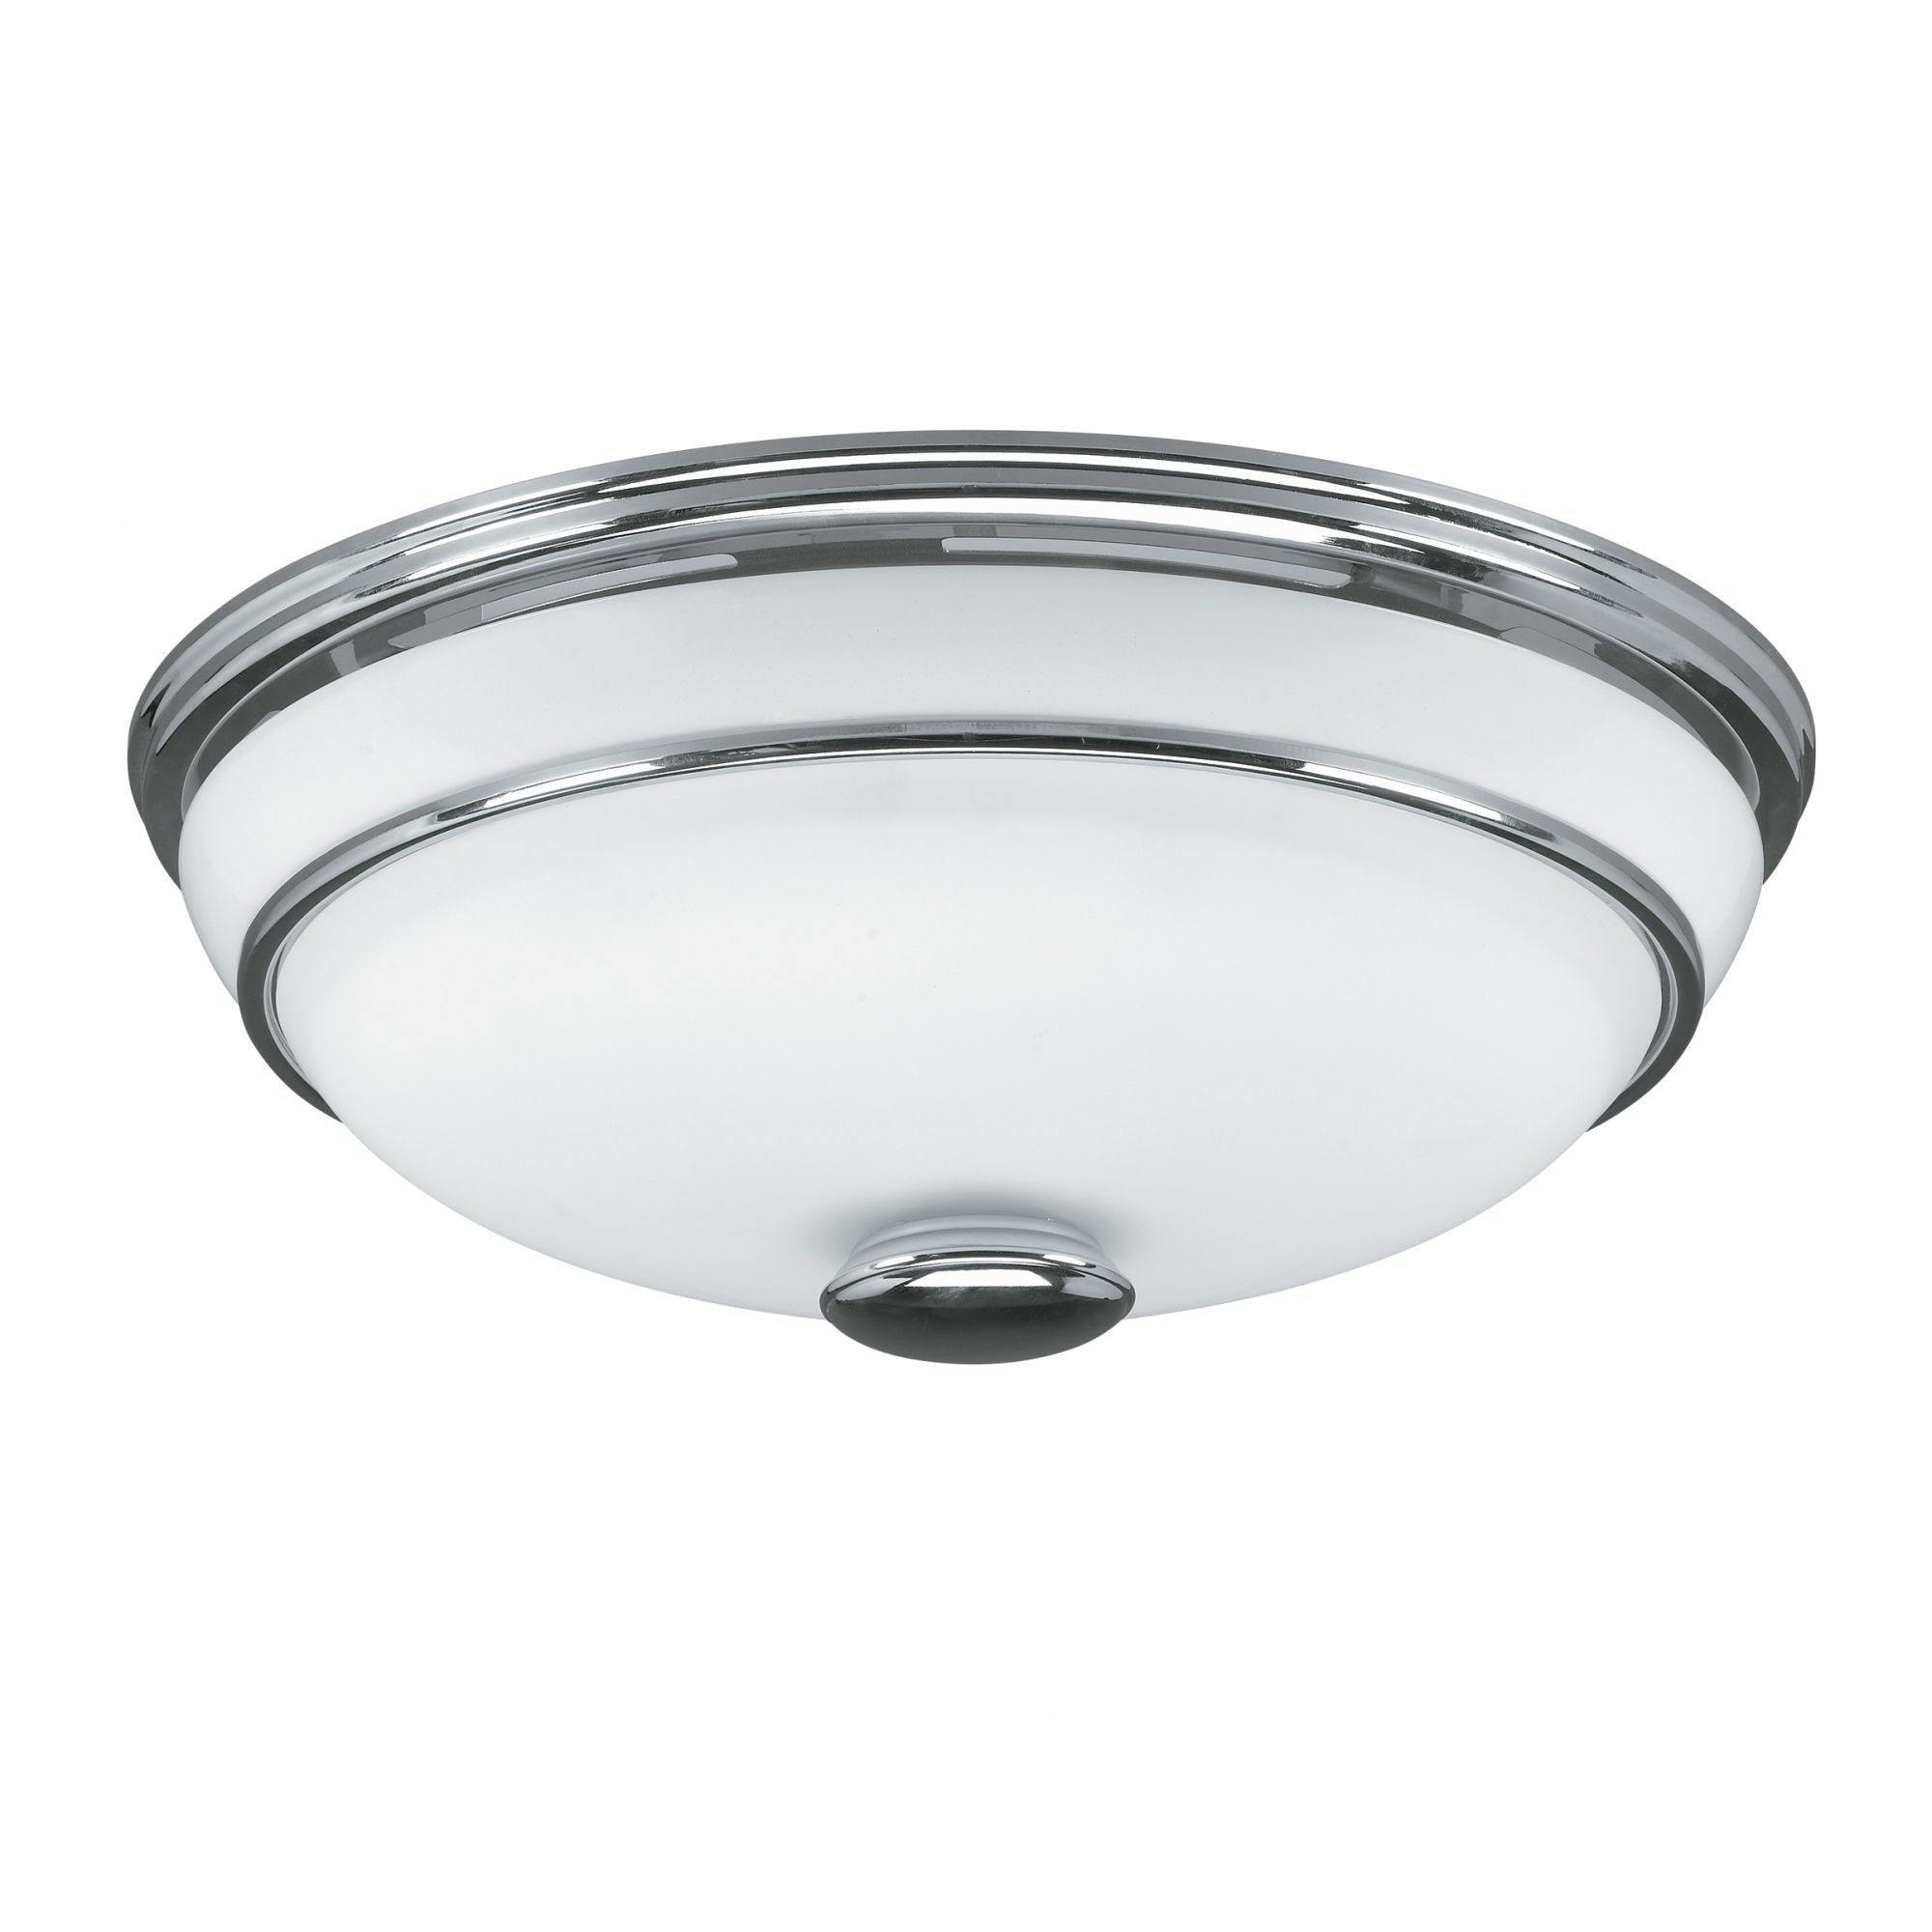 Hunter Fans Victorian Bathroom Exhaust Fan In Chrome   81021